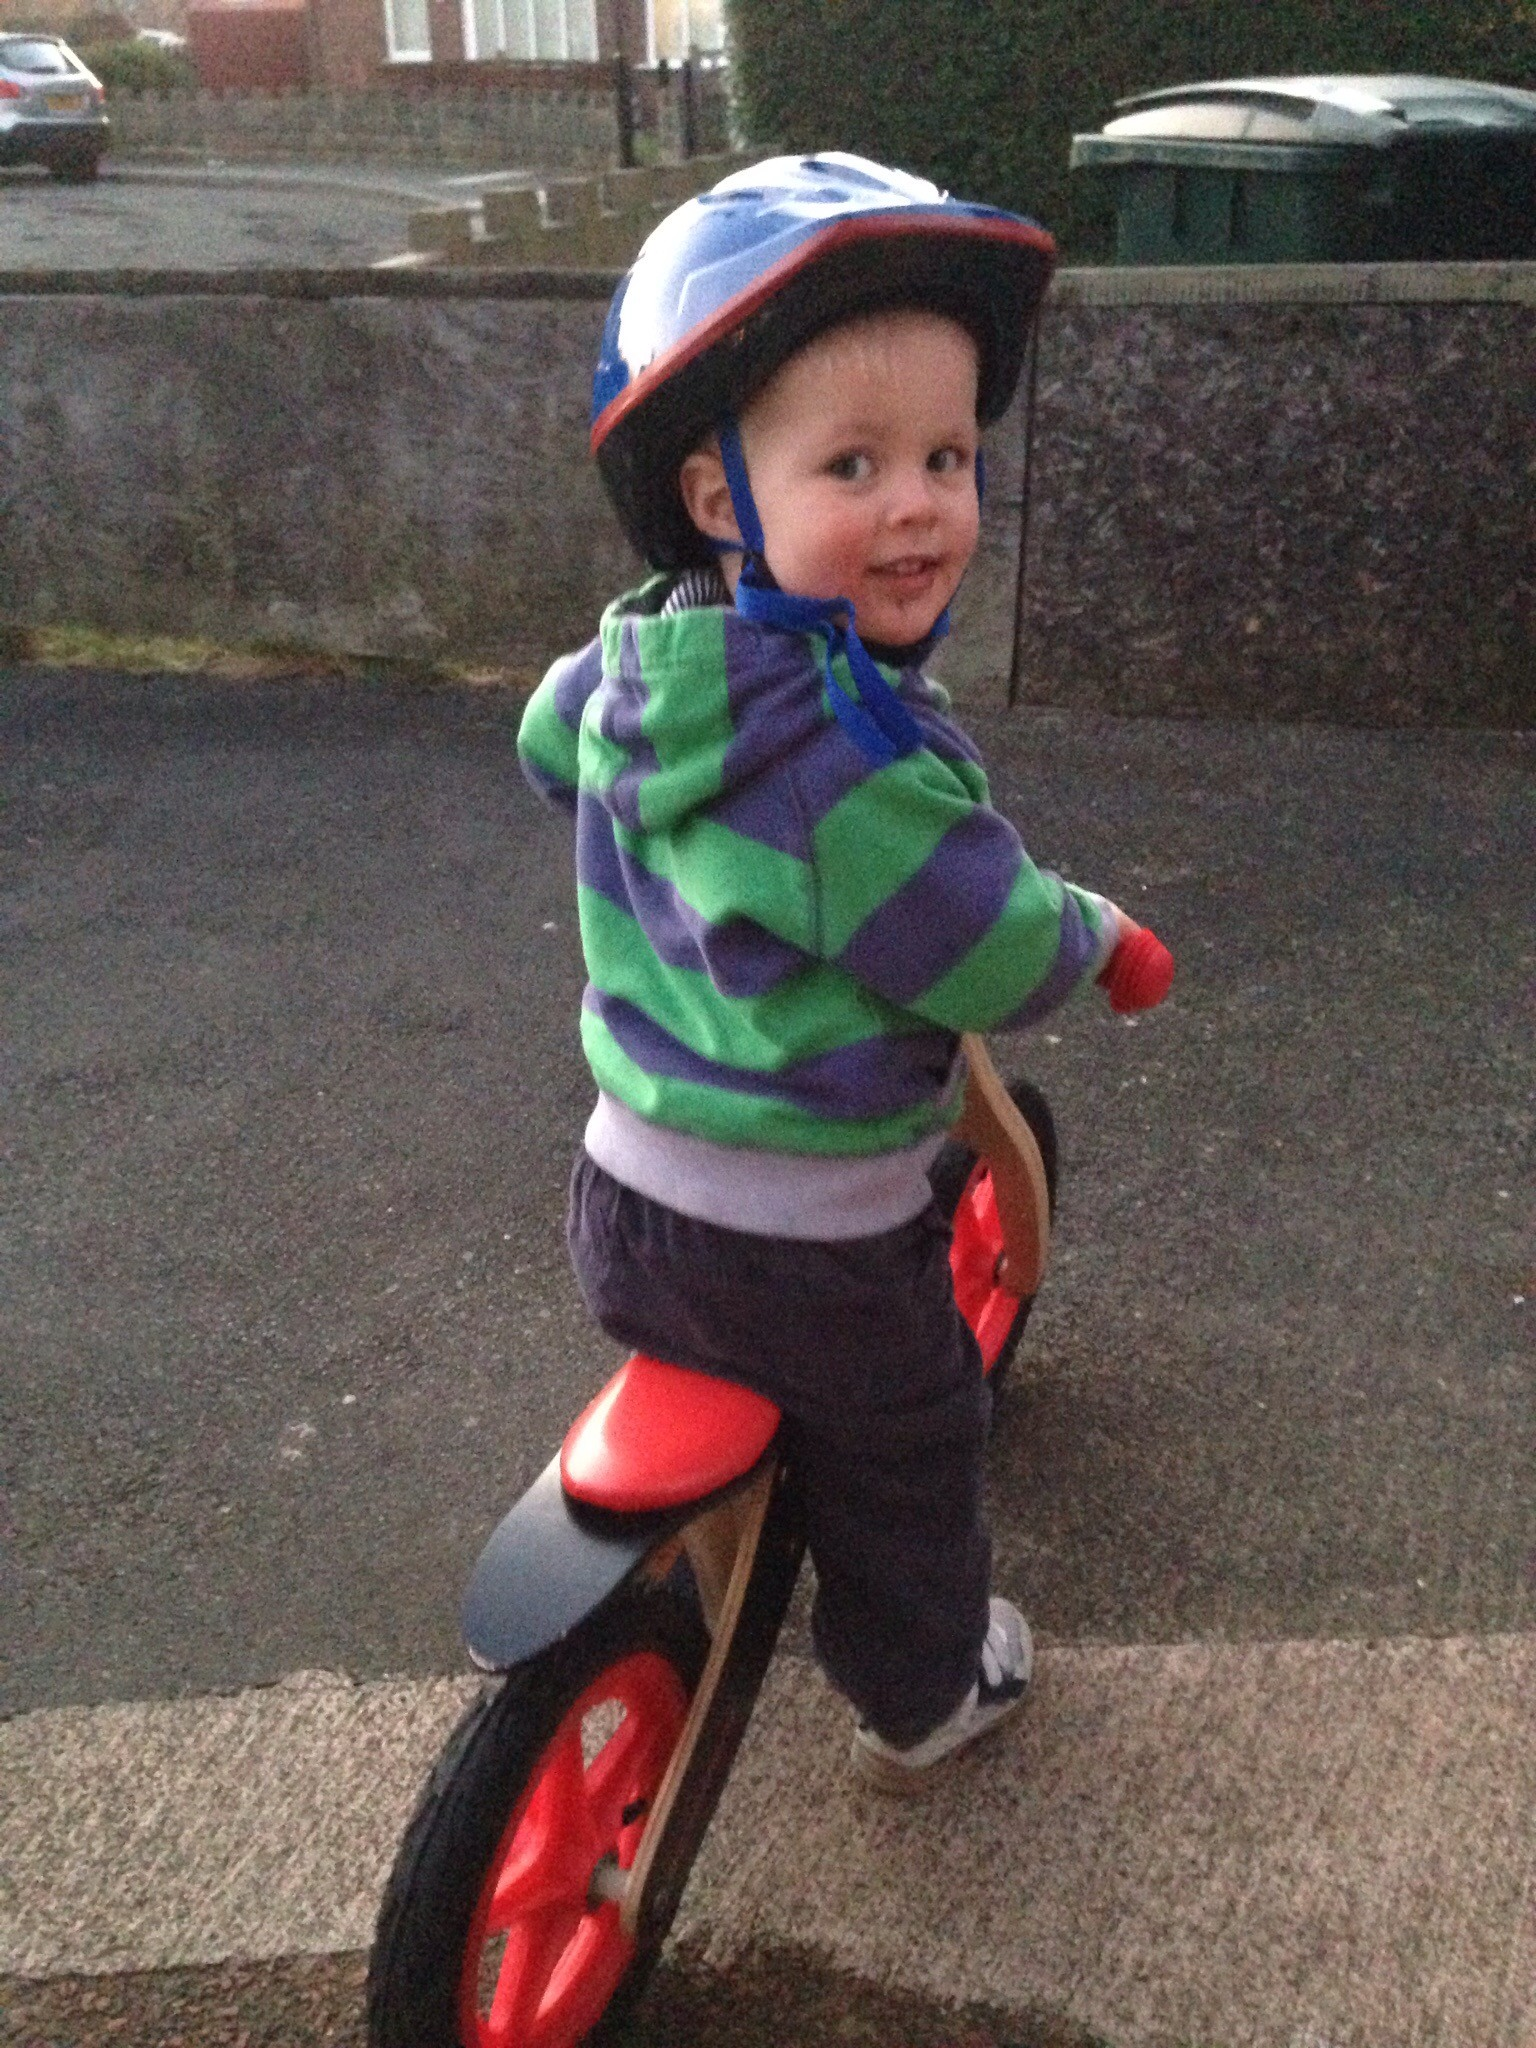 James and his balance bike